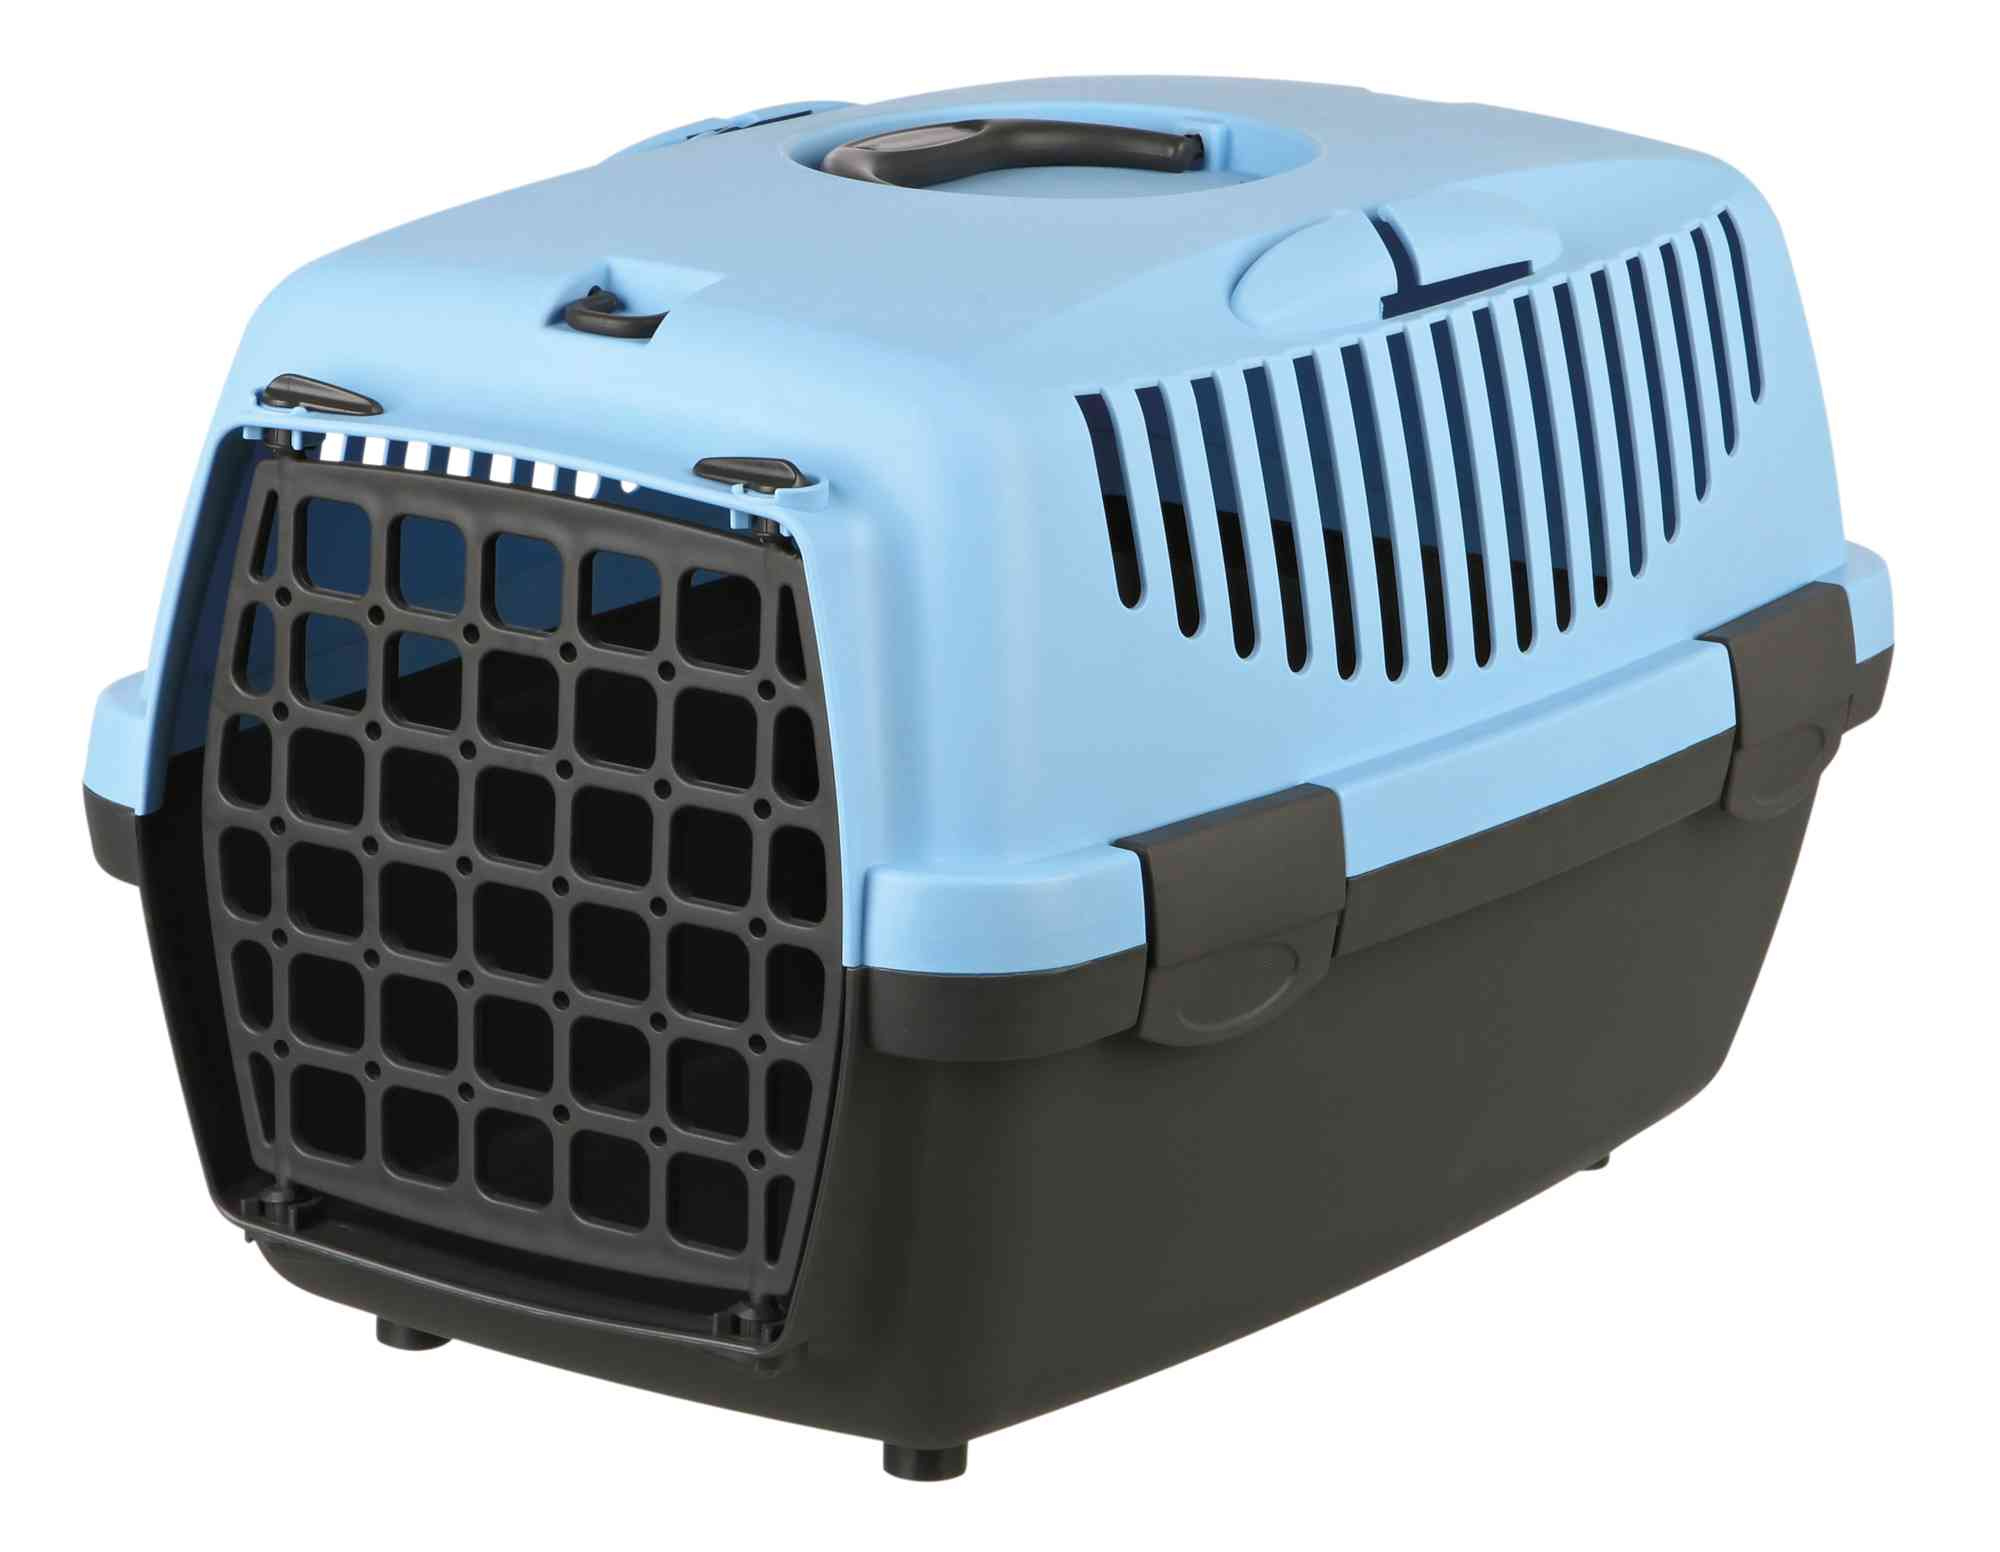 Trixie transportbox voor cavia's